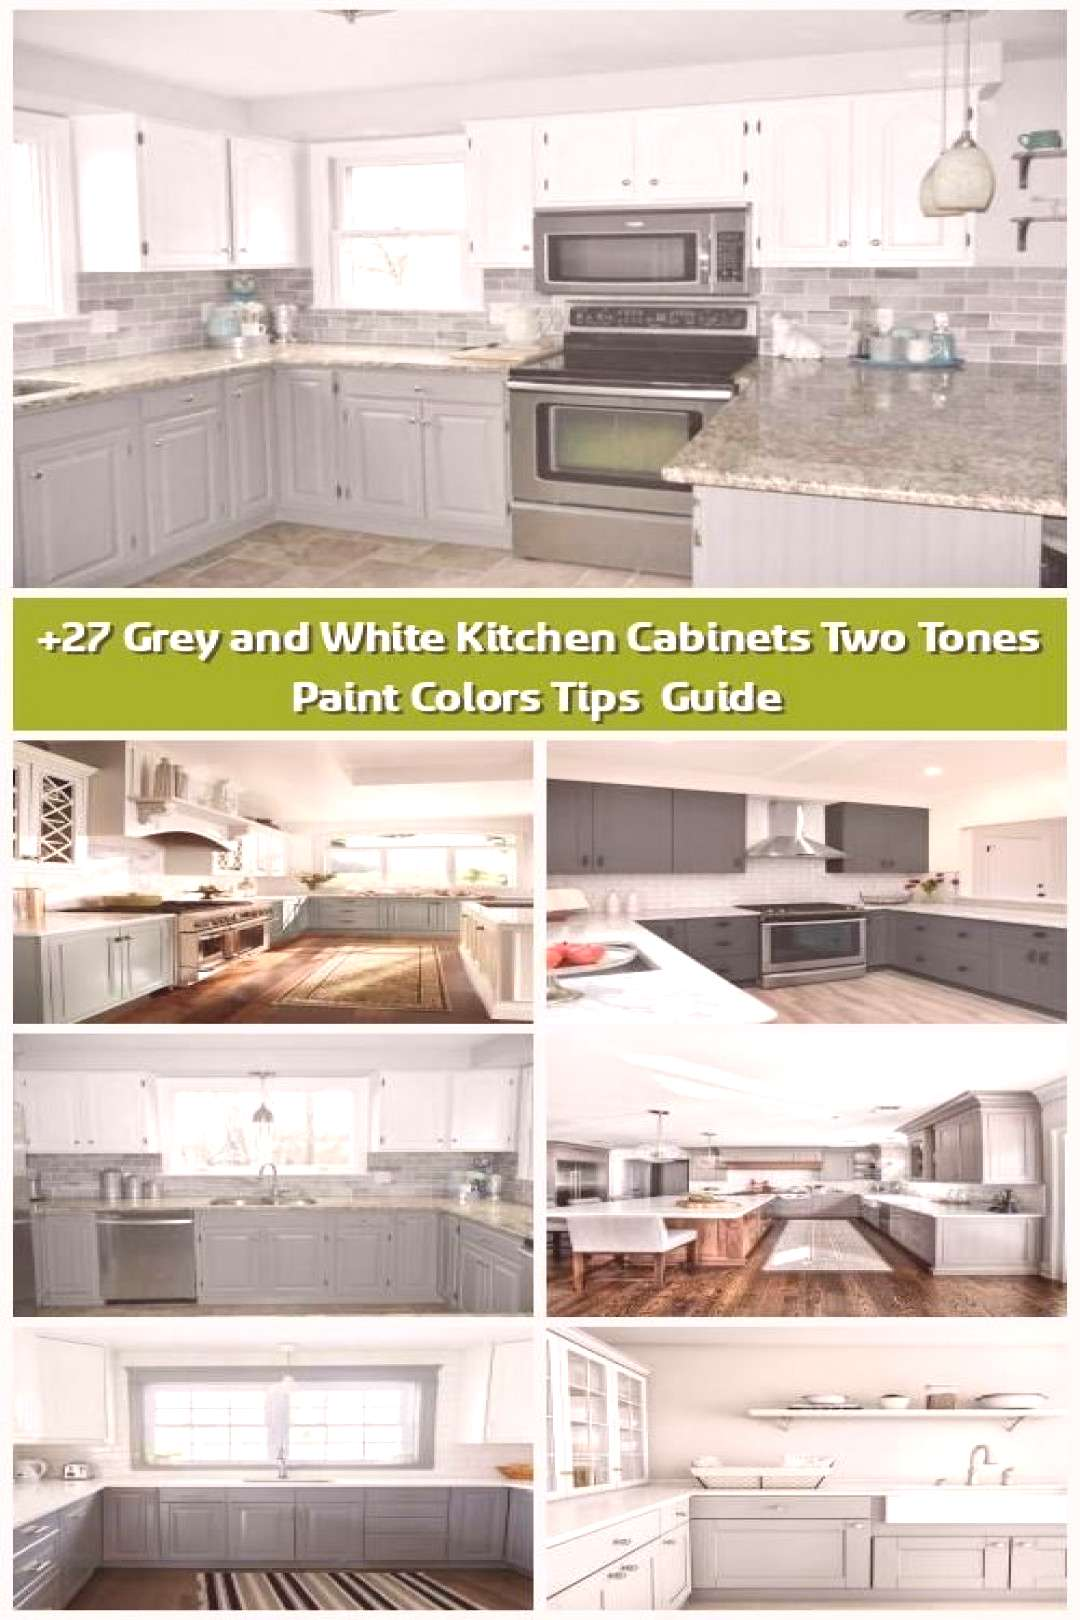 Toms Shoes 80% OFF!gt 27 Gray and White Kitchen Cabinets Two Tones Paint Colors Tips amp Guide - As .